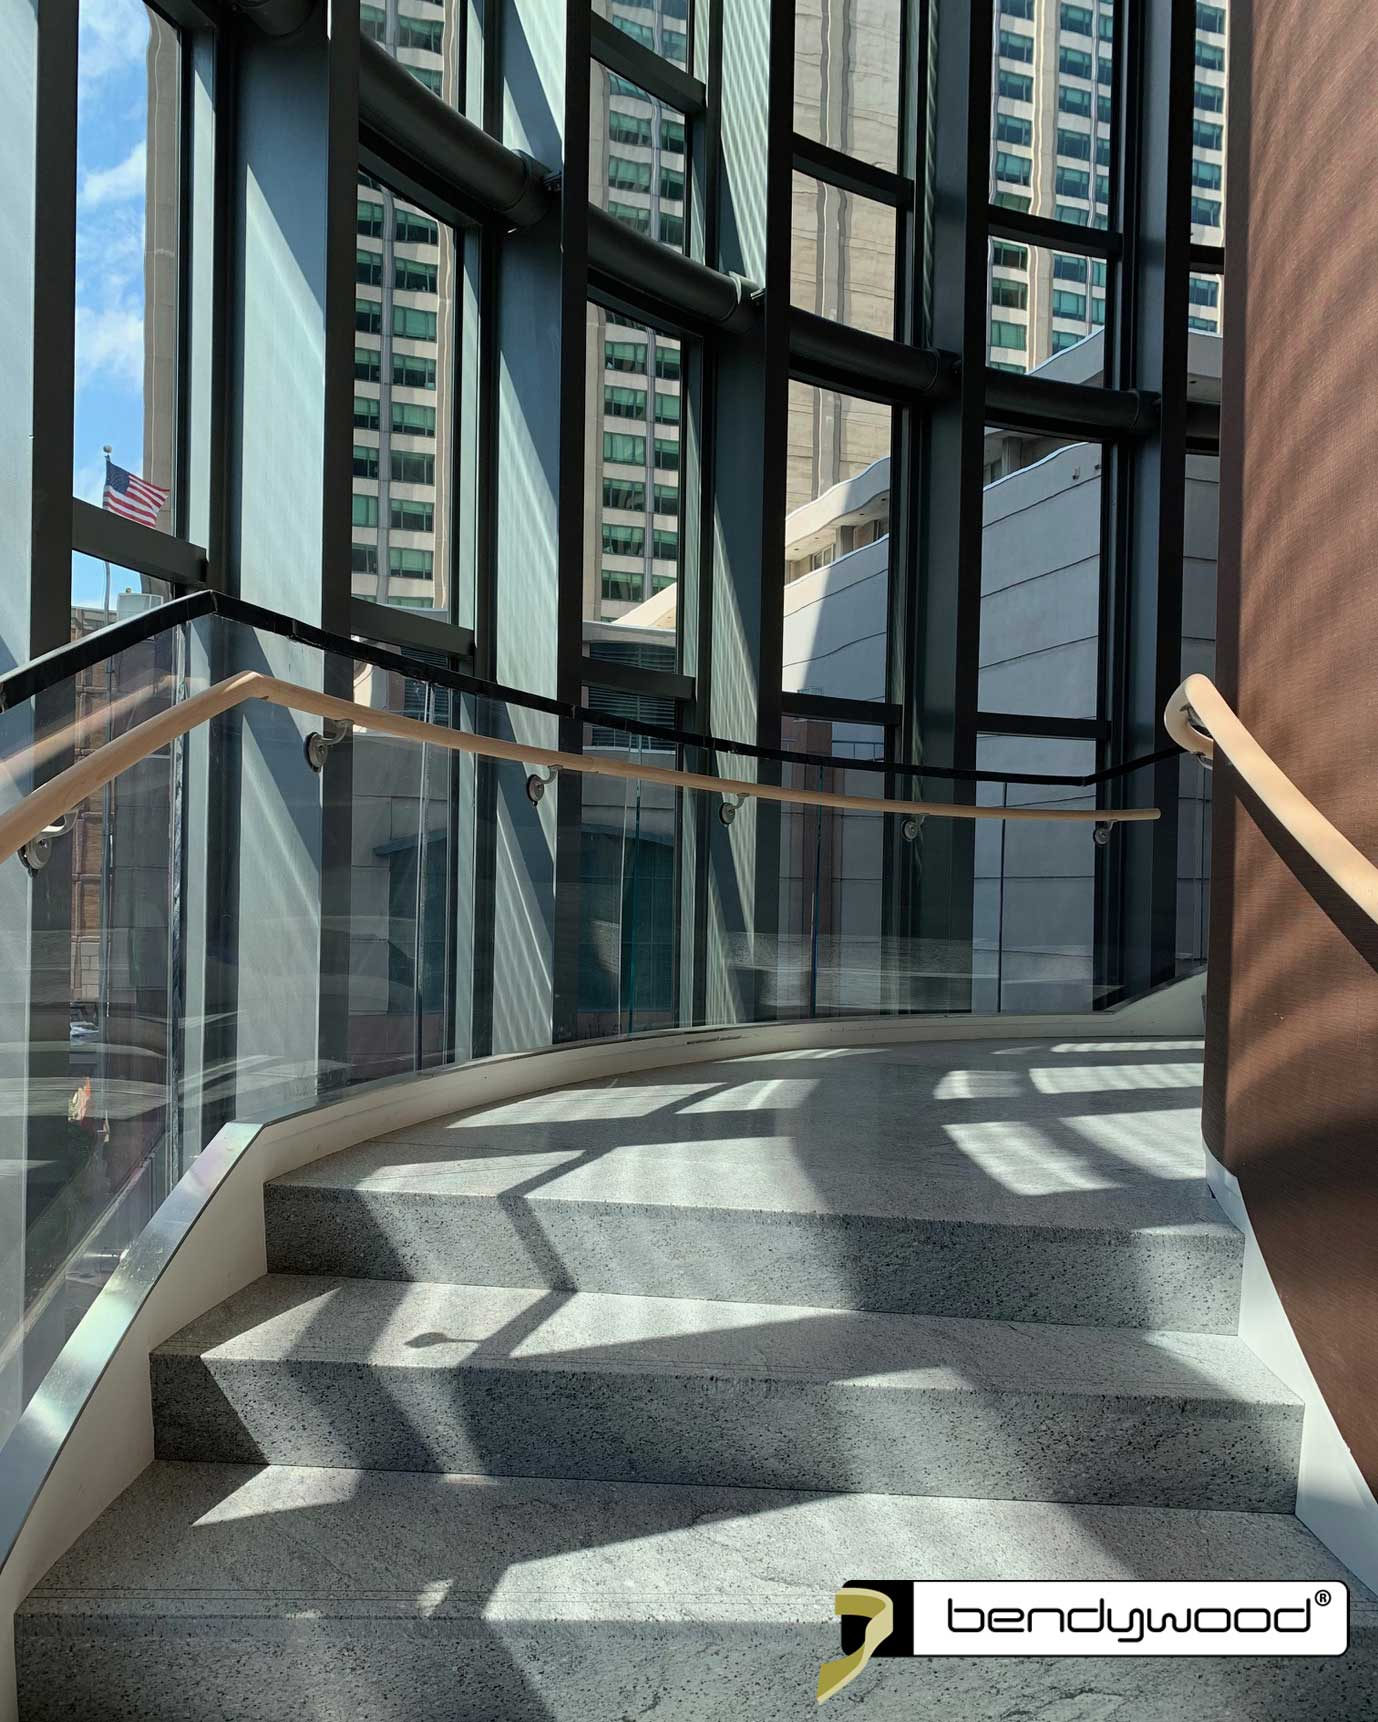 Handrails in Bendywood®-beech for curved staircases, Four Seasons Hotel Boston USA